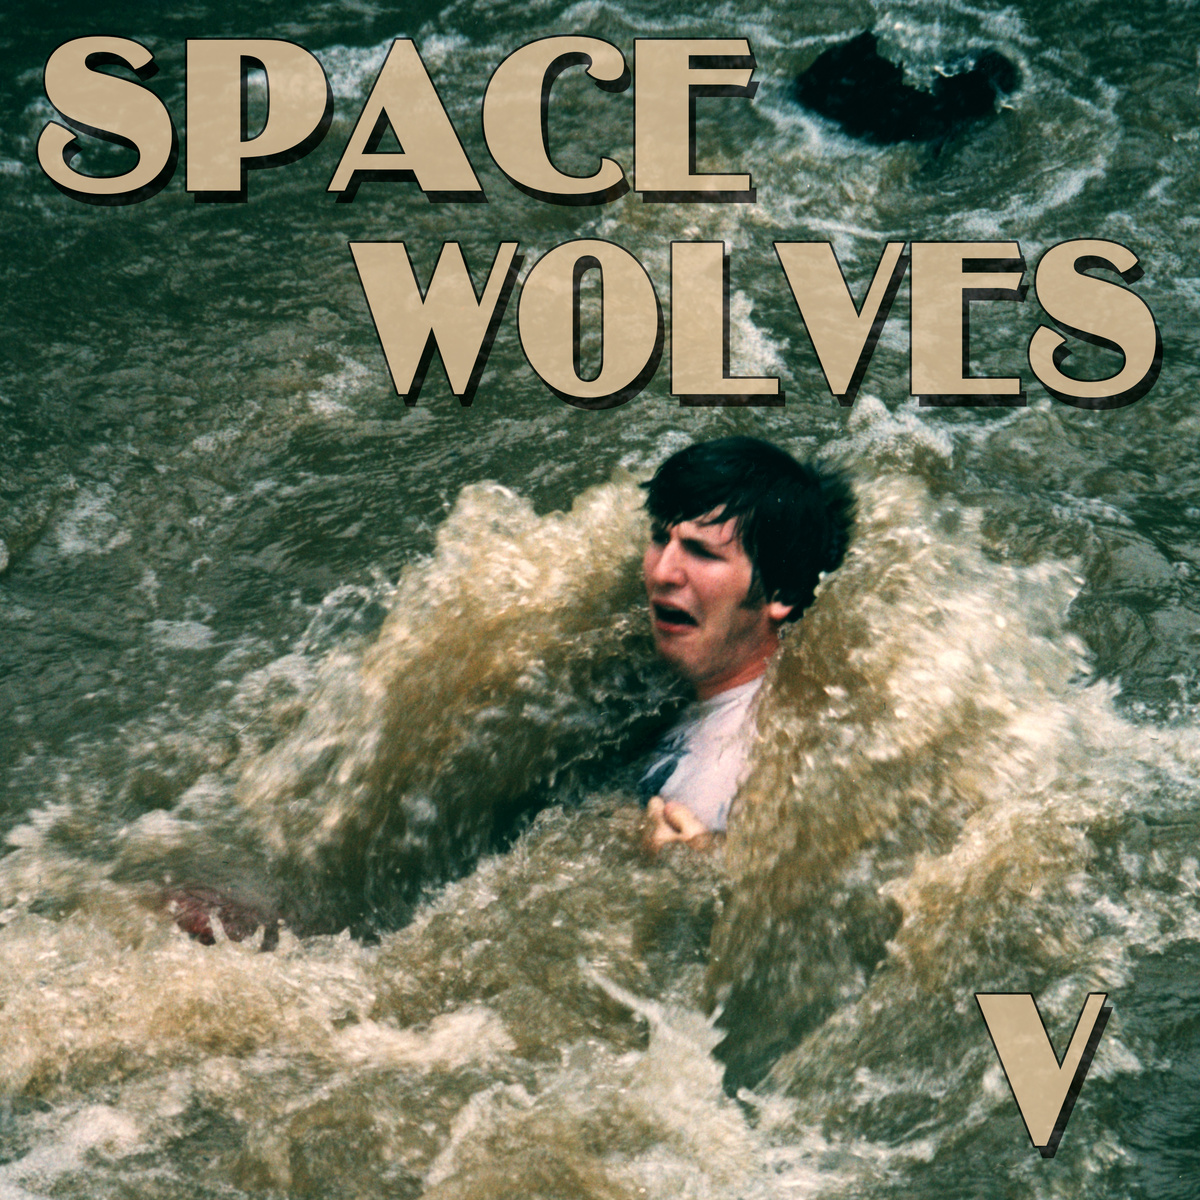 Space Wolves – Space Wolves V